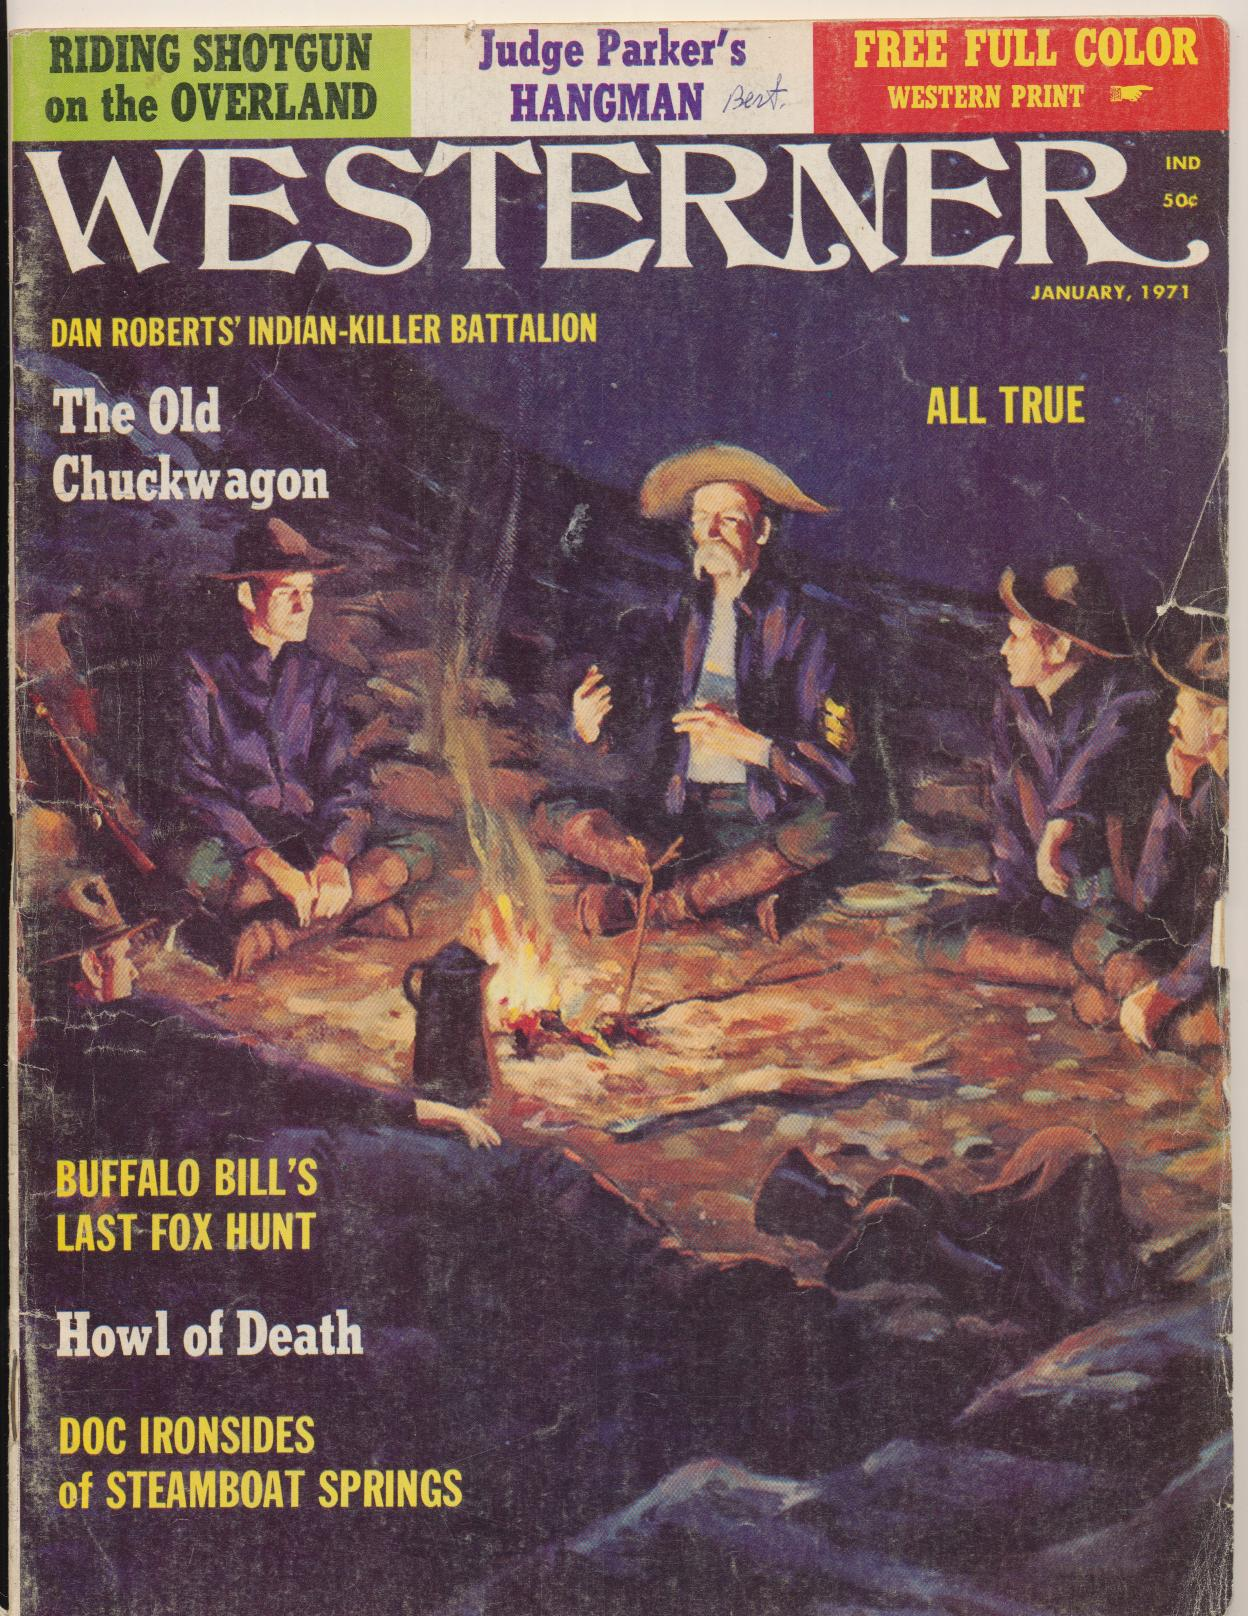 January 1971 Westerner - Buffalo Bill John Wesley Hardin ++